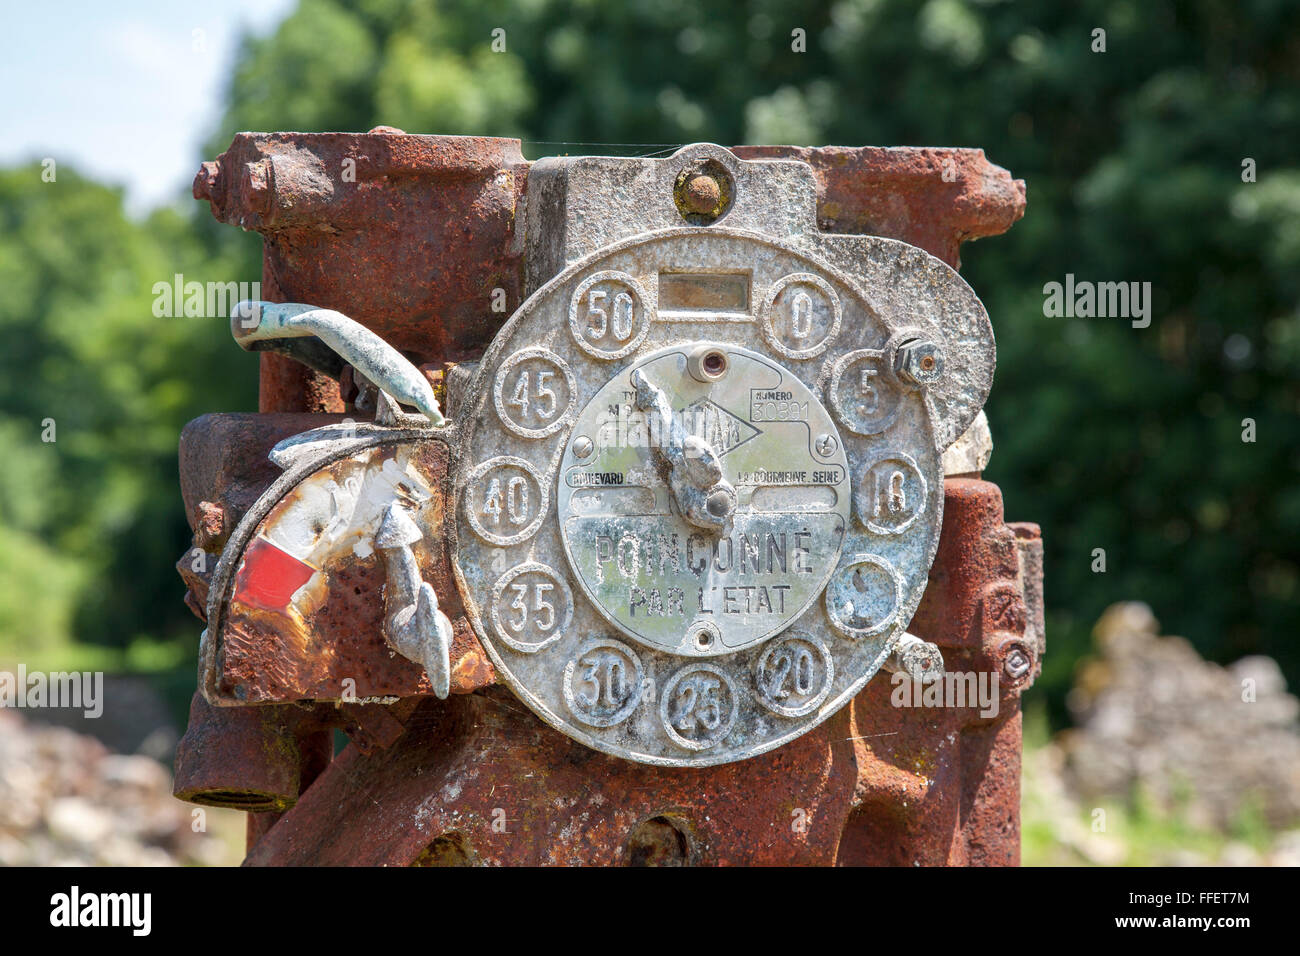 Rusting petrol pump in abandoned village of Oradour sur Glane, Haute Vienne, France - Stock Image